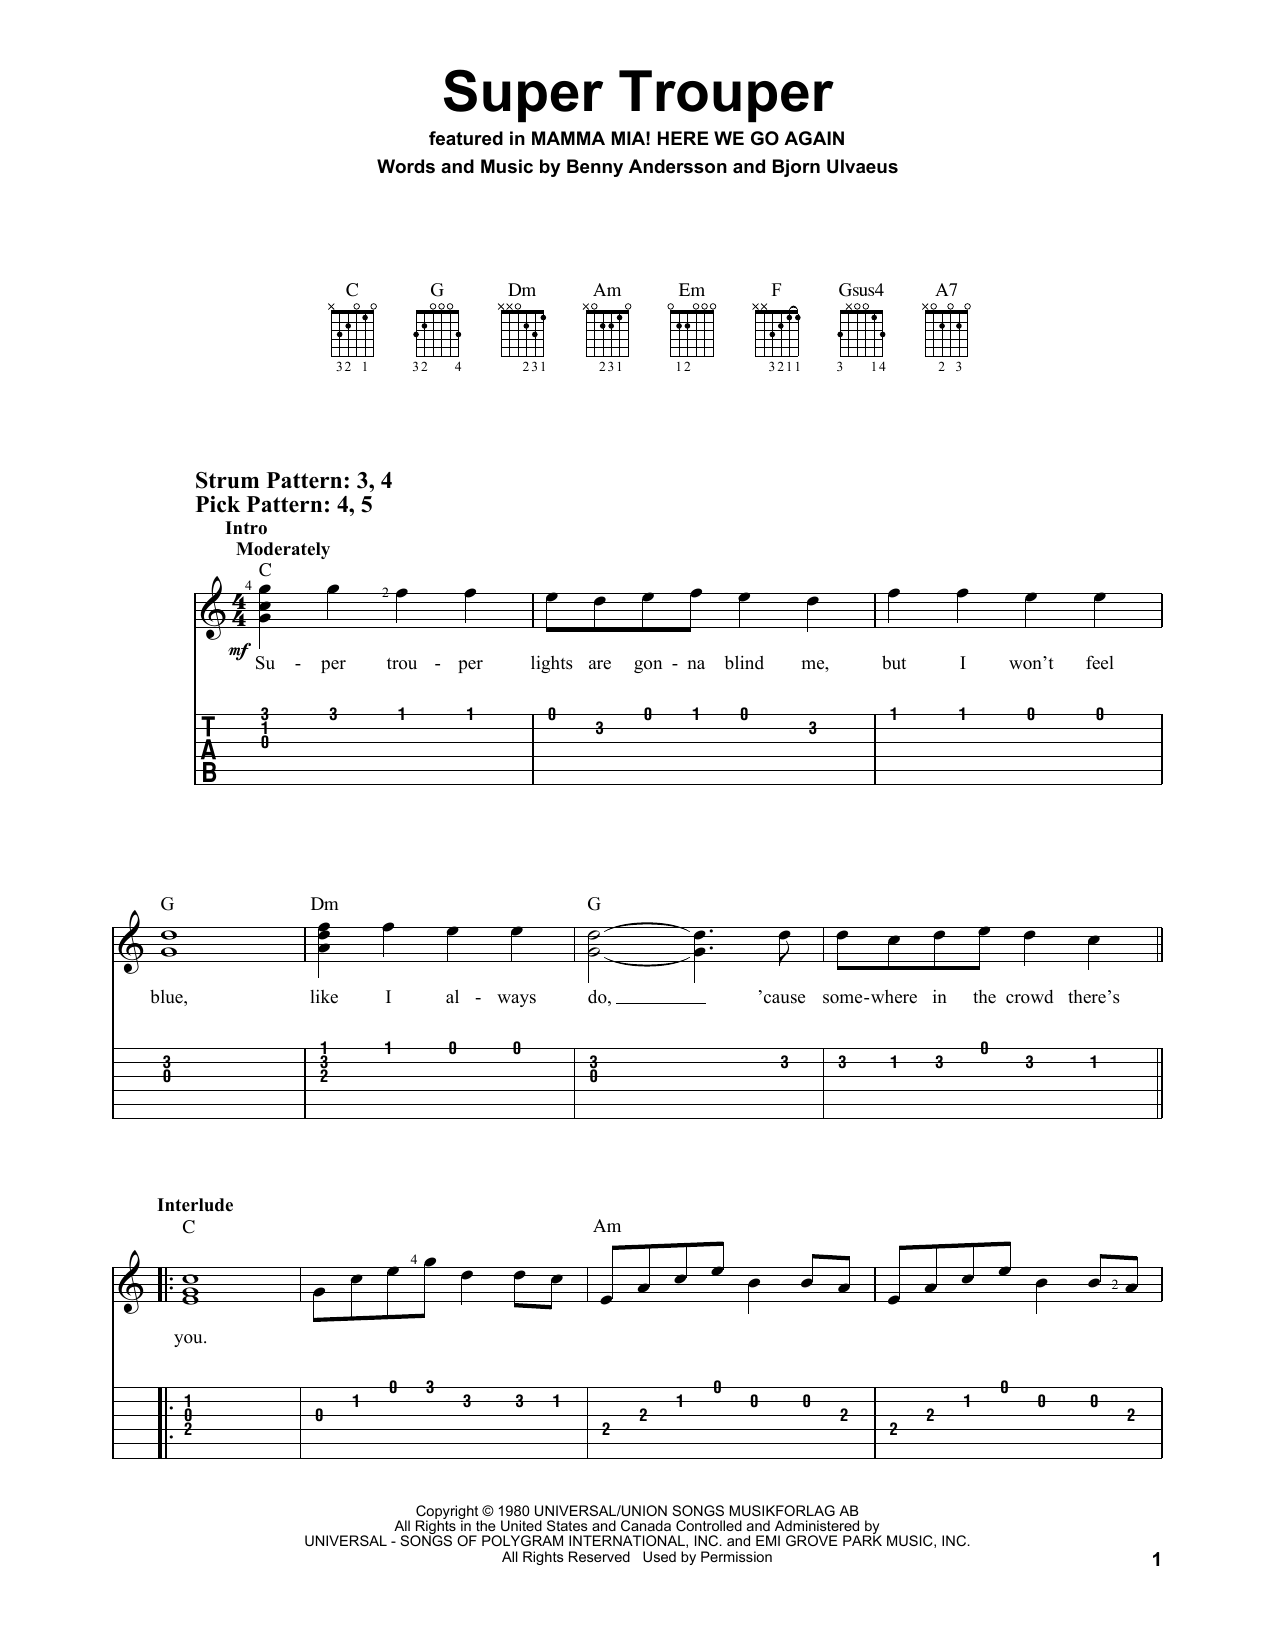 ABBA Super Trouper (from Mamma Mia! Here We Go Again) sheet music notes and chords